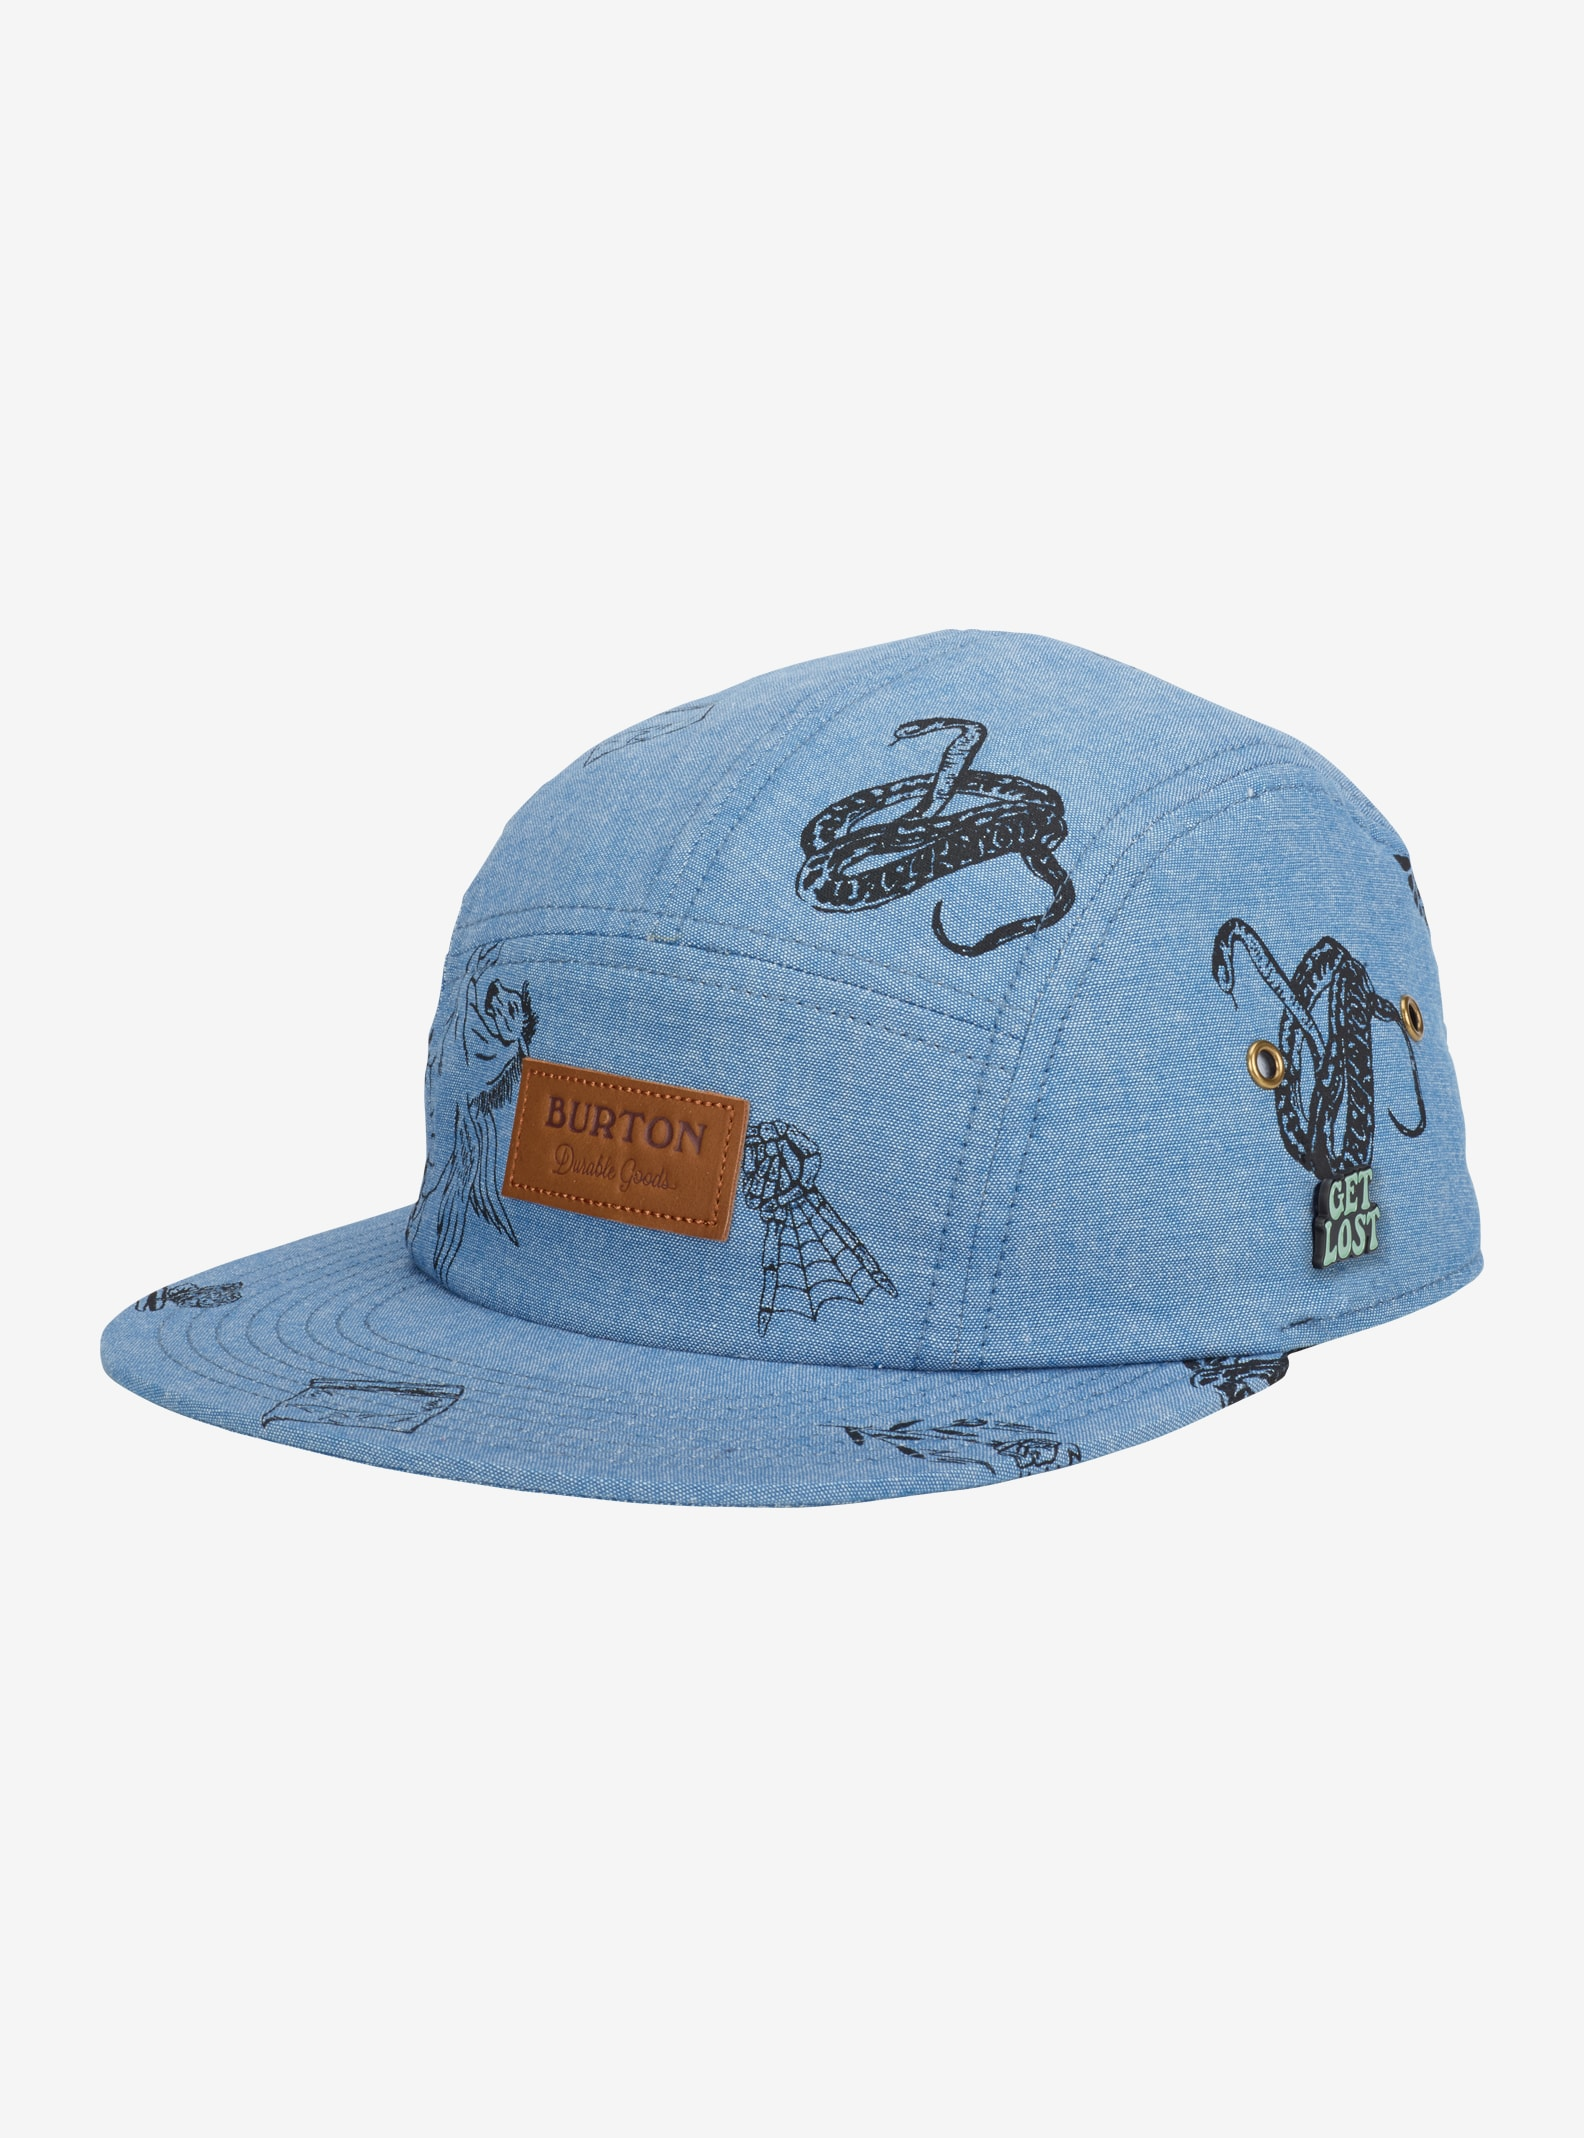 Burton Strange Daze Hat shown in Chambray Freetime